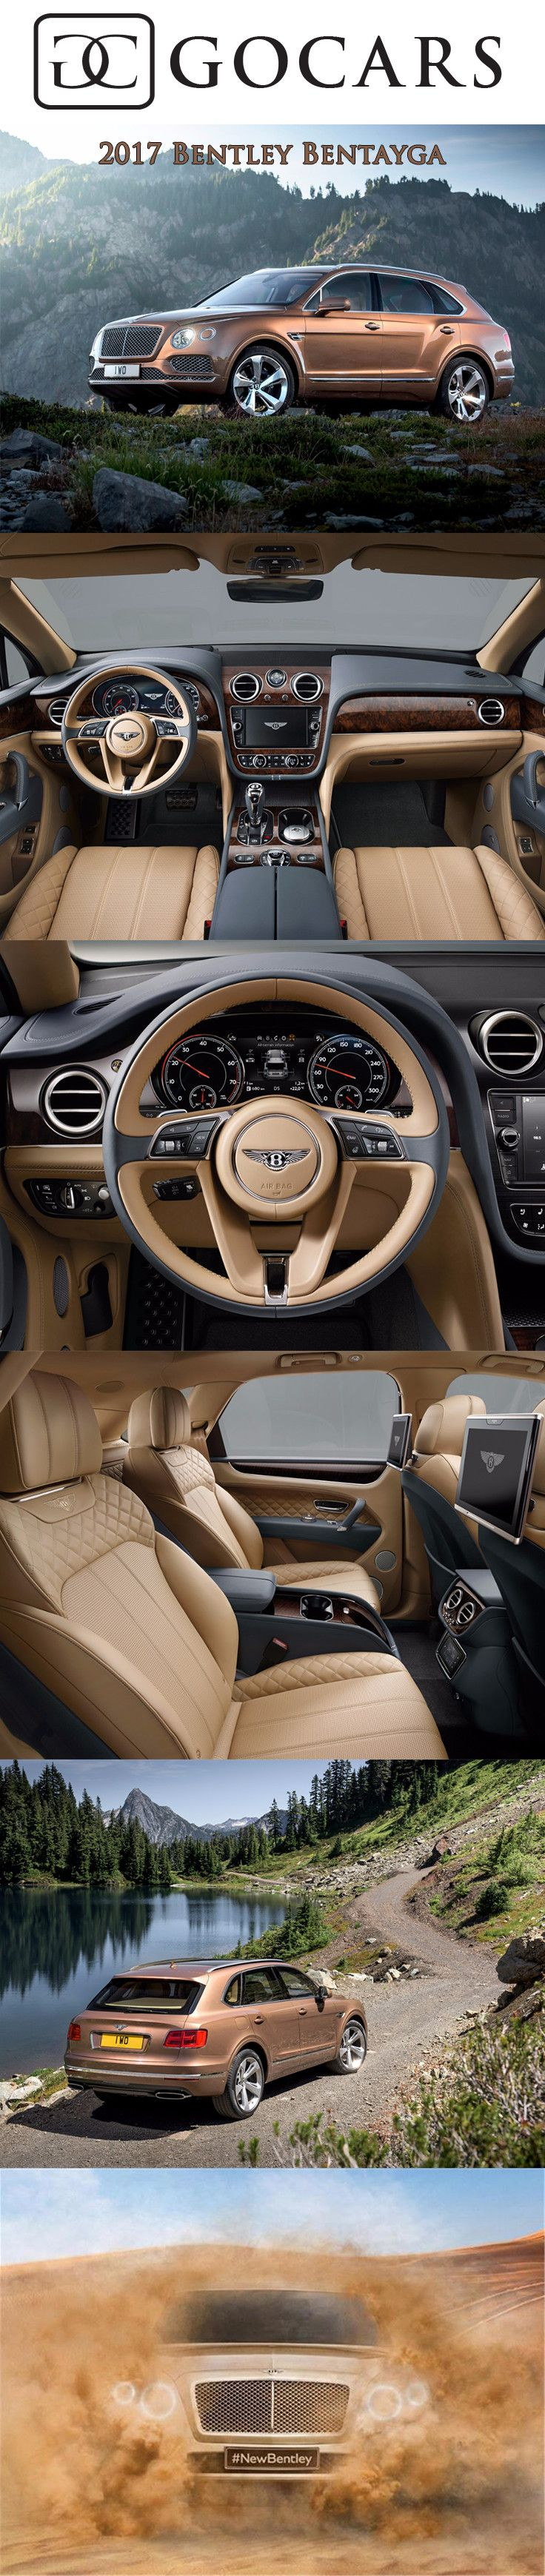 2017 Bentley Bentayga SUV